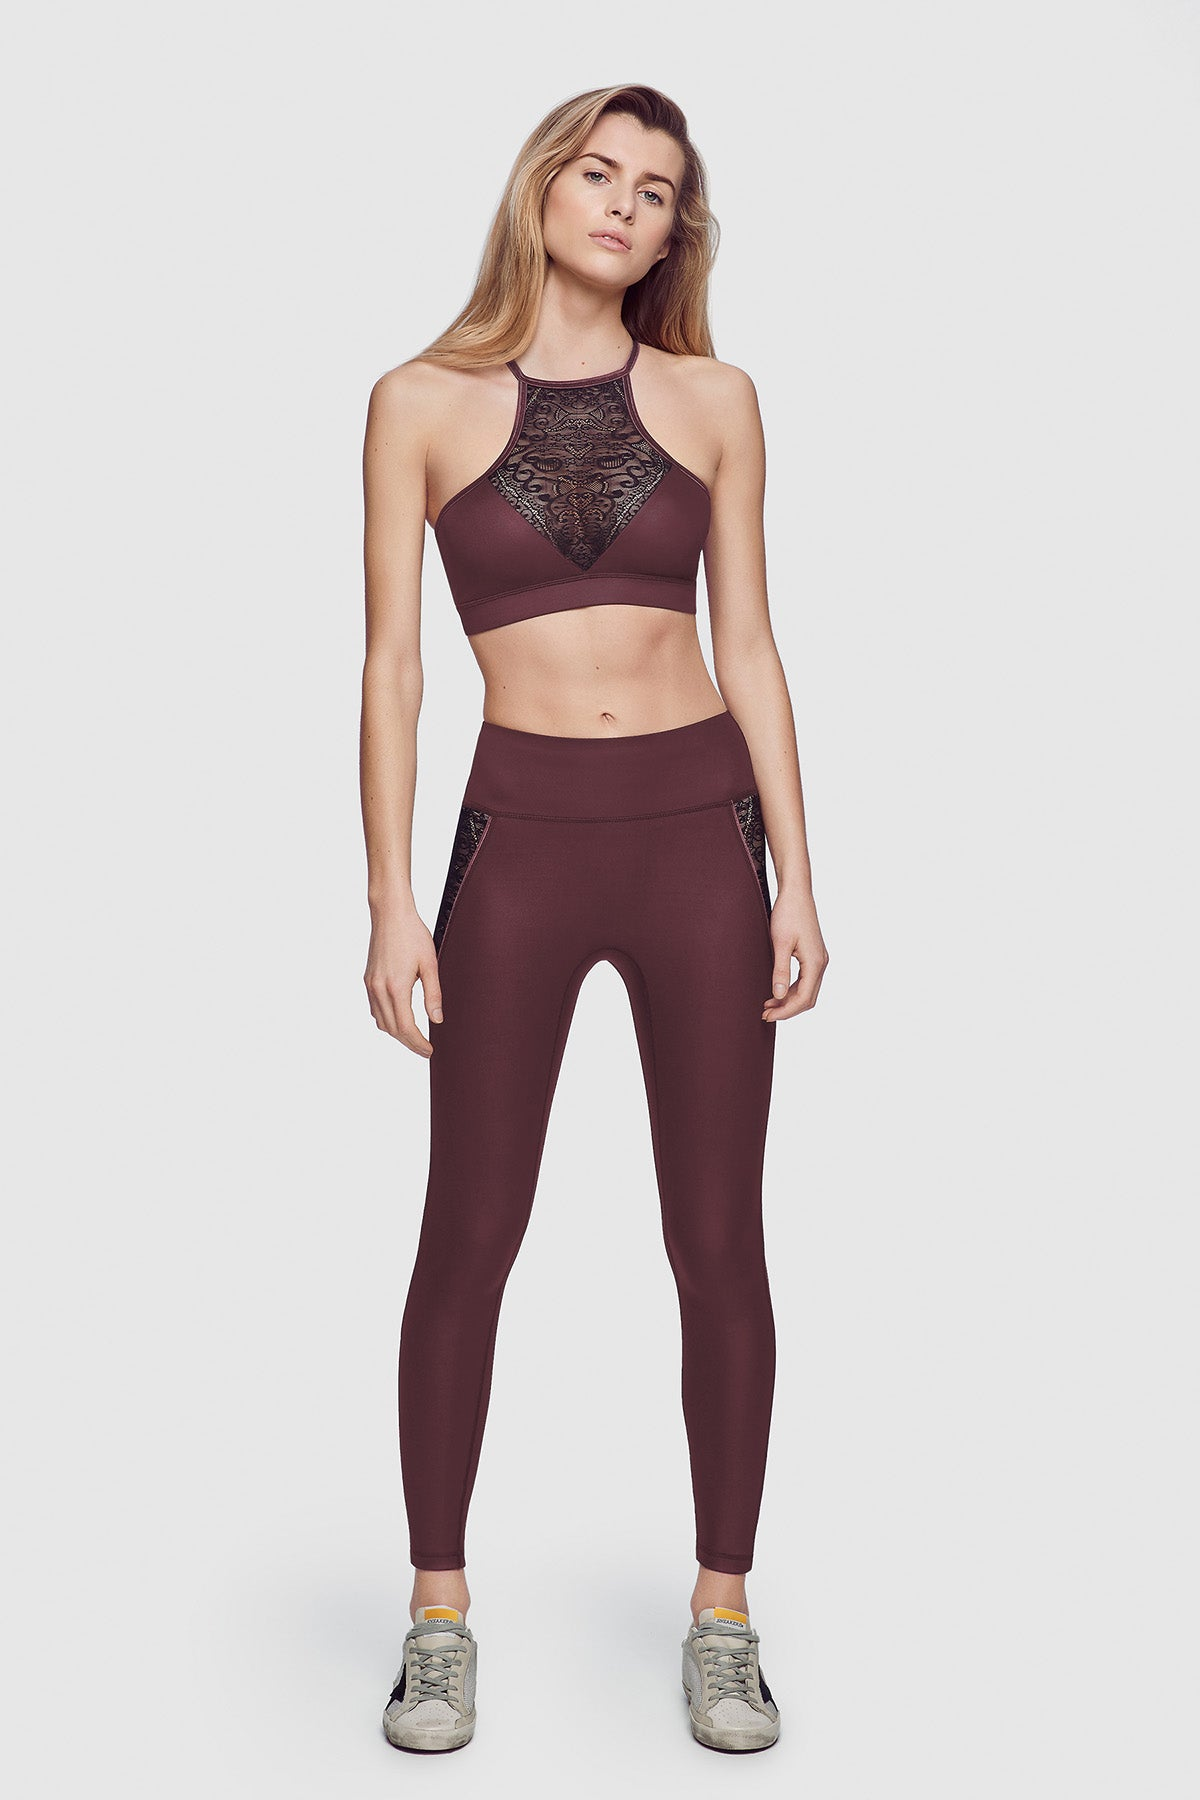 Athleisure Bra Top Burgundy